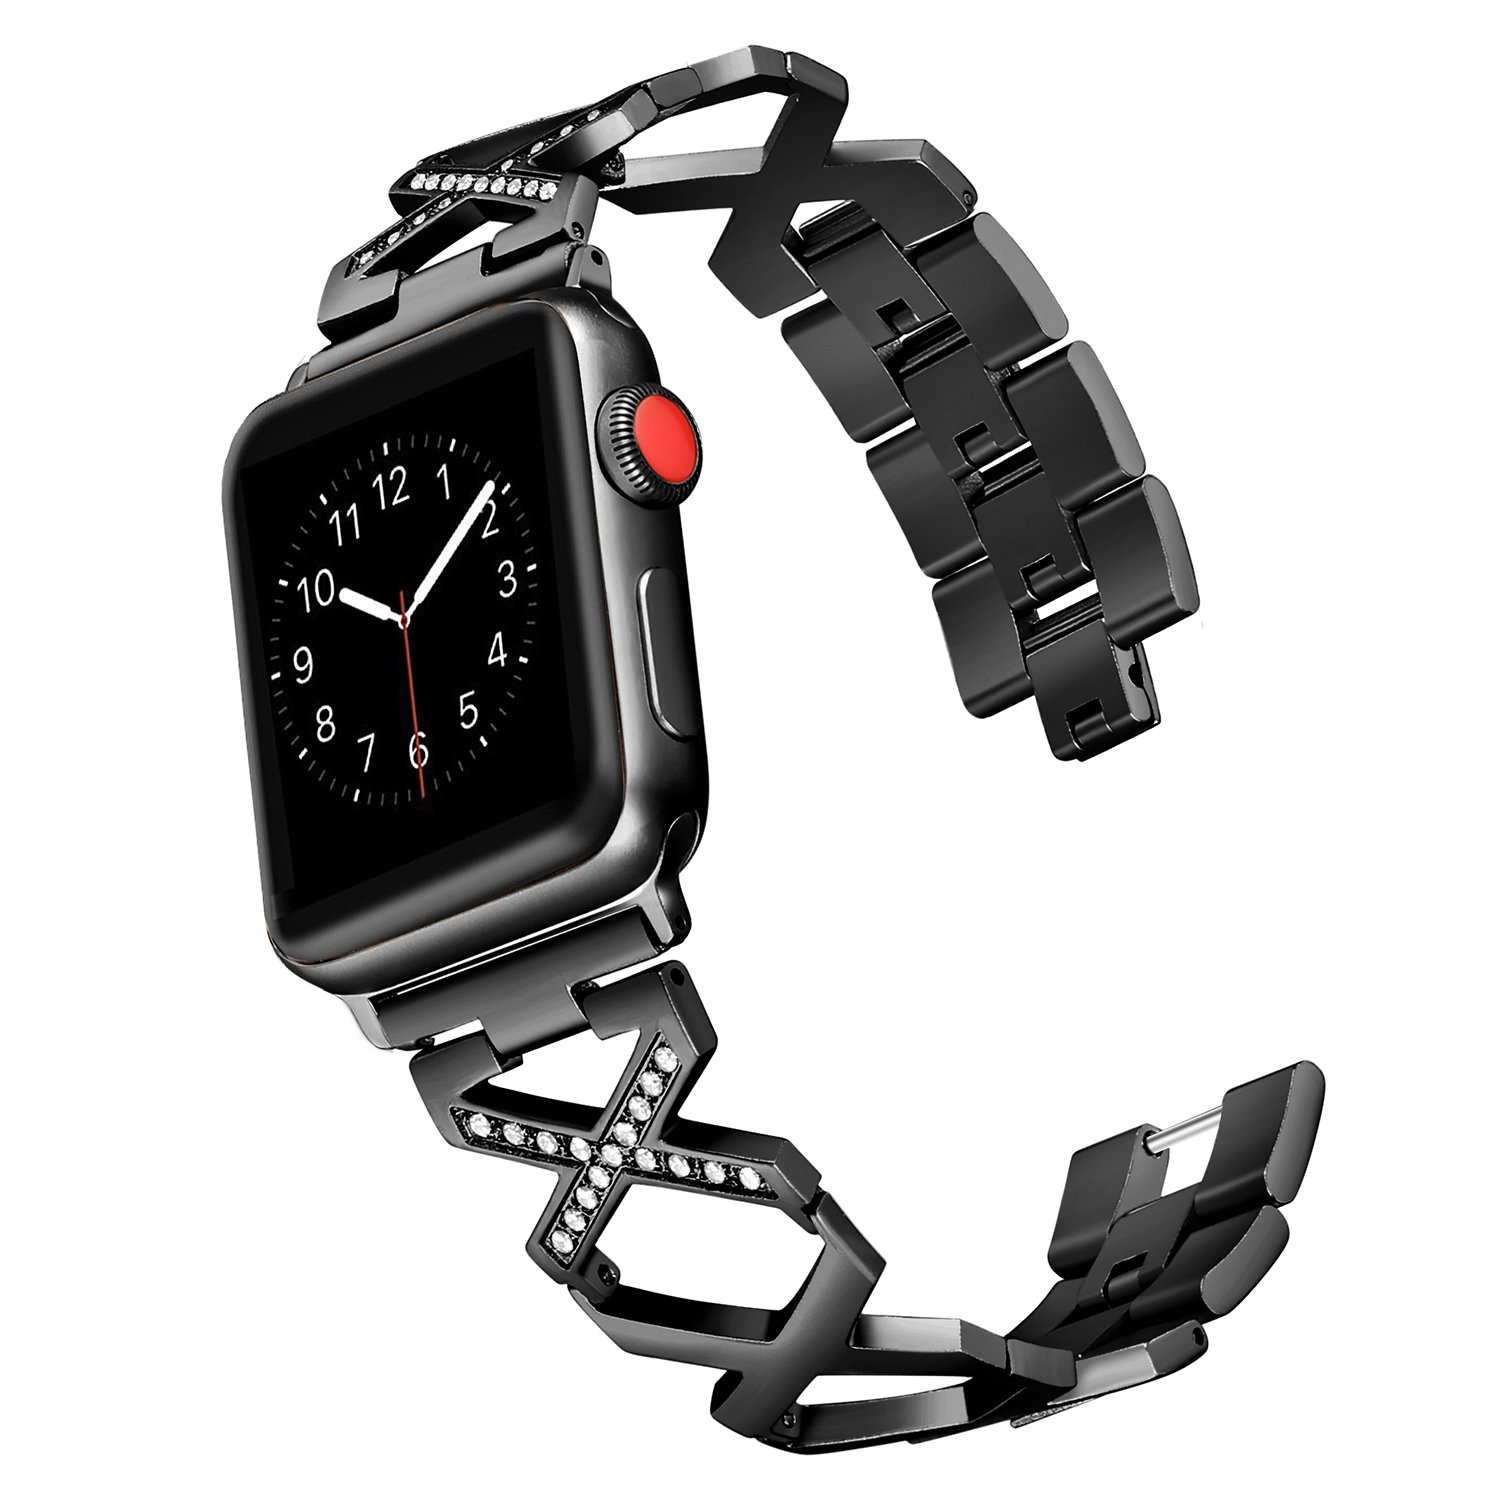 Secbolt 42mm/44mm Bands Compatible Apple Watch Band Series 4 & 5 44mm, Series 3/2/1 42mm, X Pattern Stainless Steel Wristband Sport Strap iWatch, 4 ...